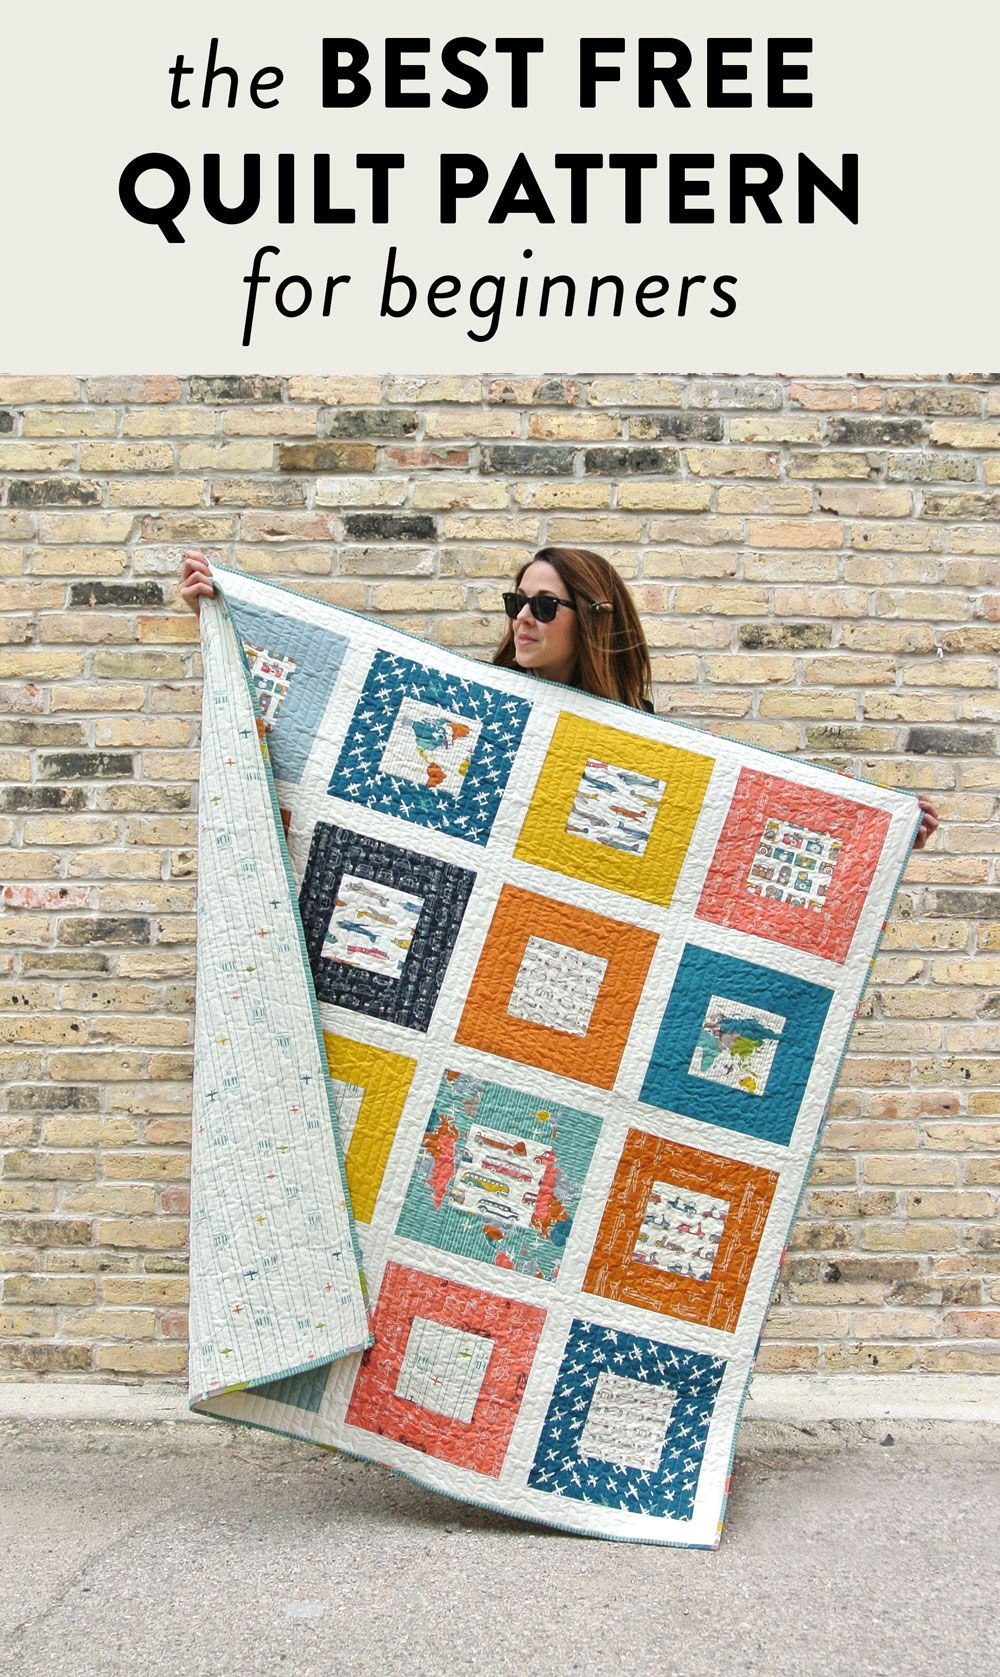 The Best Free Quilt Pattern For Beginners Make A Memory Quilt With This Step By Step Tutorial Great Patte Beginner Quilt Patterns Quilt Patterns Memory Quilt